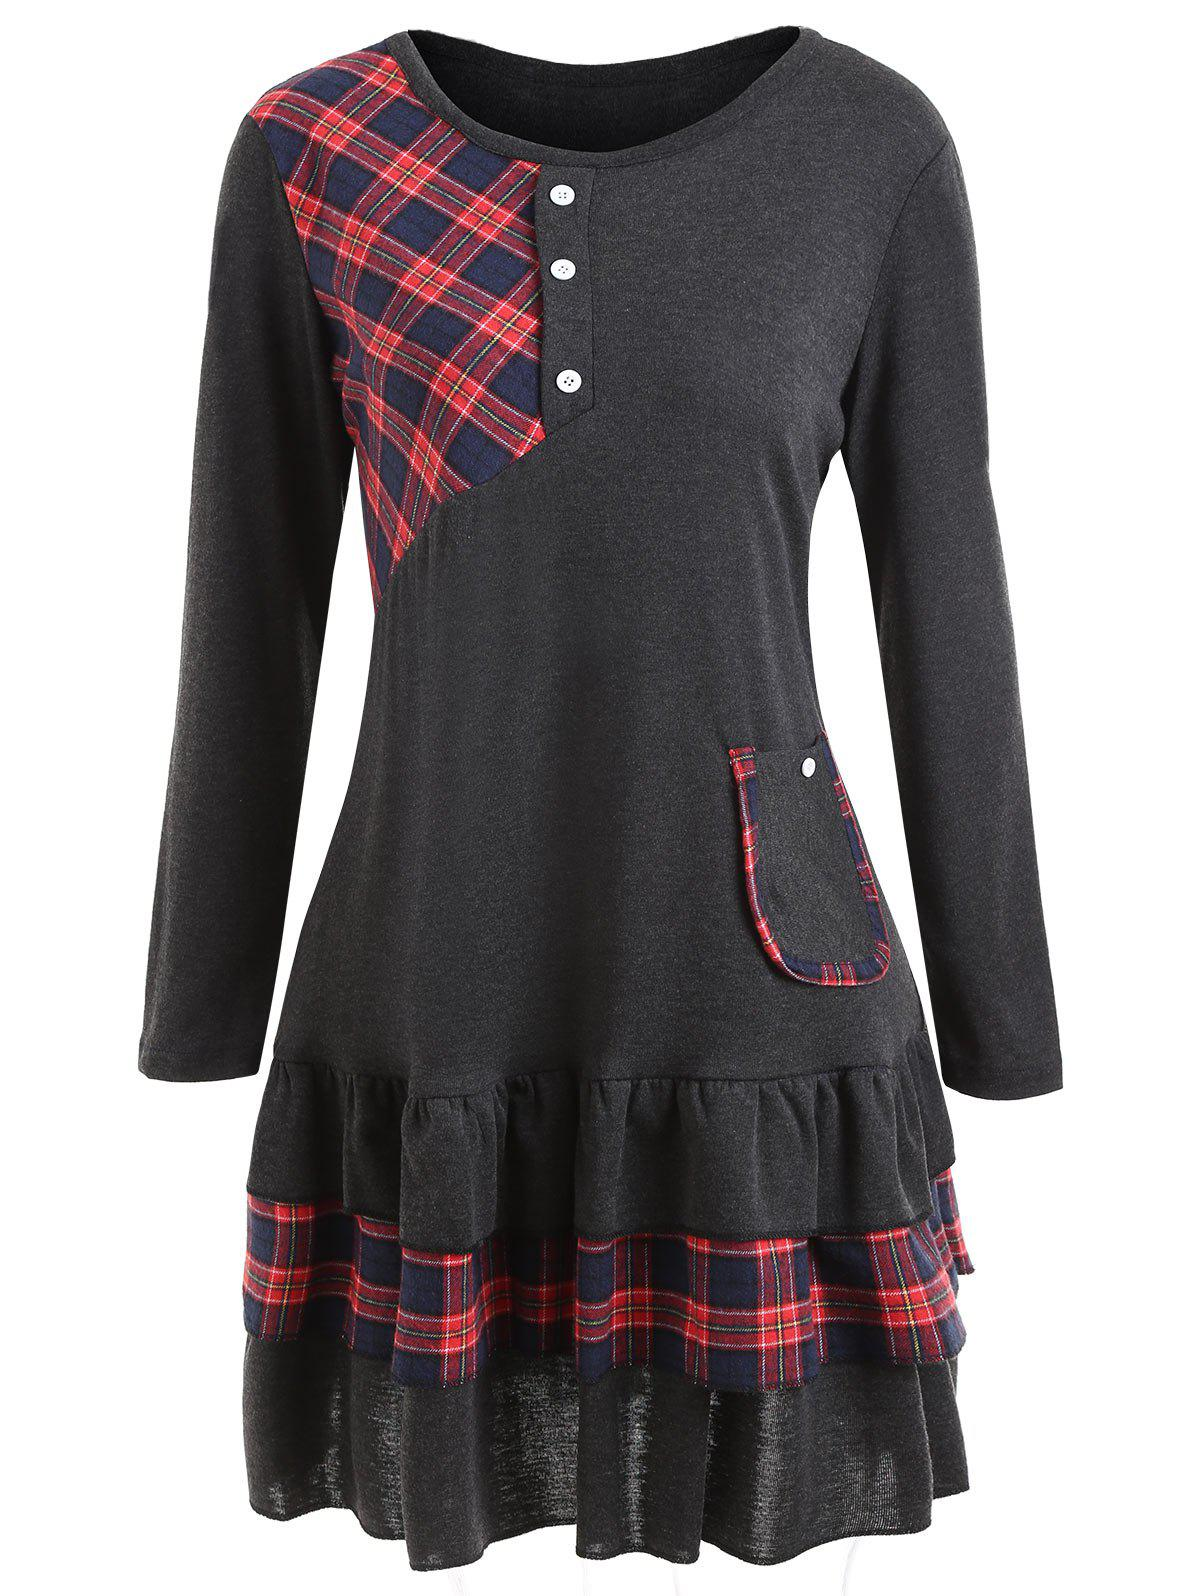 Flounce Plus Size Tartan Panel Tunic TopWOMEN<br><br>Size: 2XL; Color: DARK GRAY; Material: Cotton Blends,Polyester; Shirt Length: Long; Sleeve Length: Full; Collar: Round Neck; Style: Casual; Season: Fall,Winter; Embellishment: Button,Front Pocket,Ruffles; Pattern Type: Plaid; Weight: 0.5300kg; Package Contents: 1 x Top;